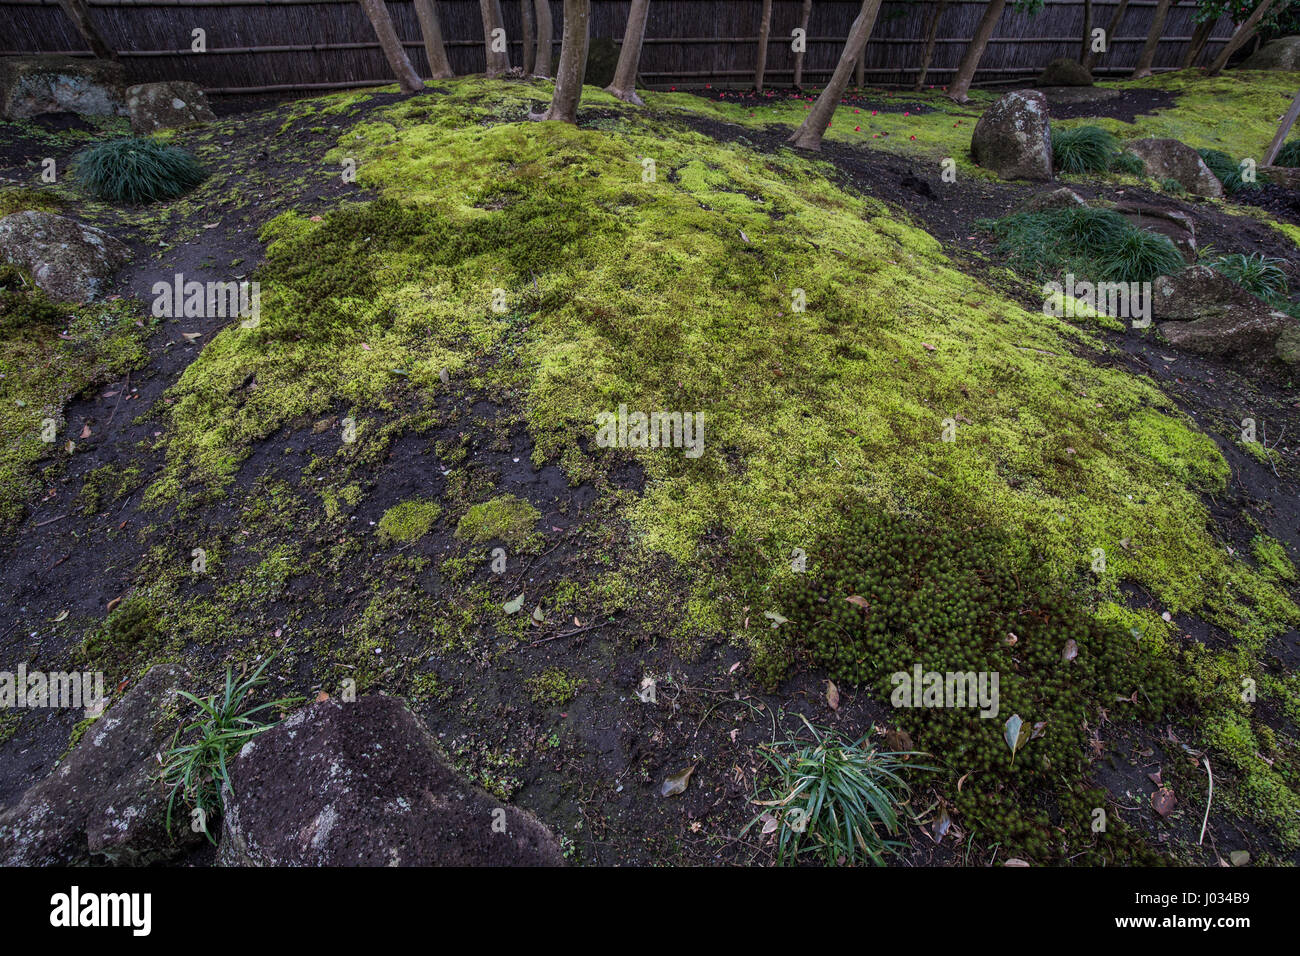 Moss and Stoneso at Five Peony Garden at Tsurugaoka Hachimangu Shrine - The garden was created in 1980 to commemorate - Stock Image